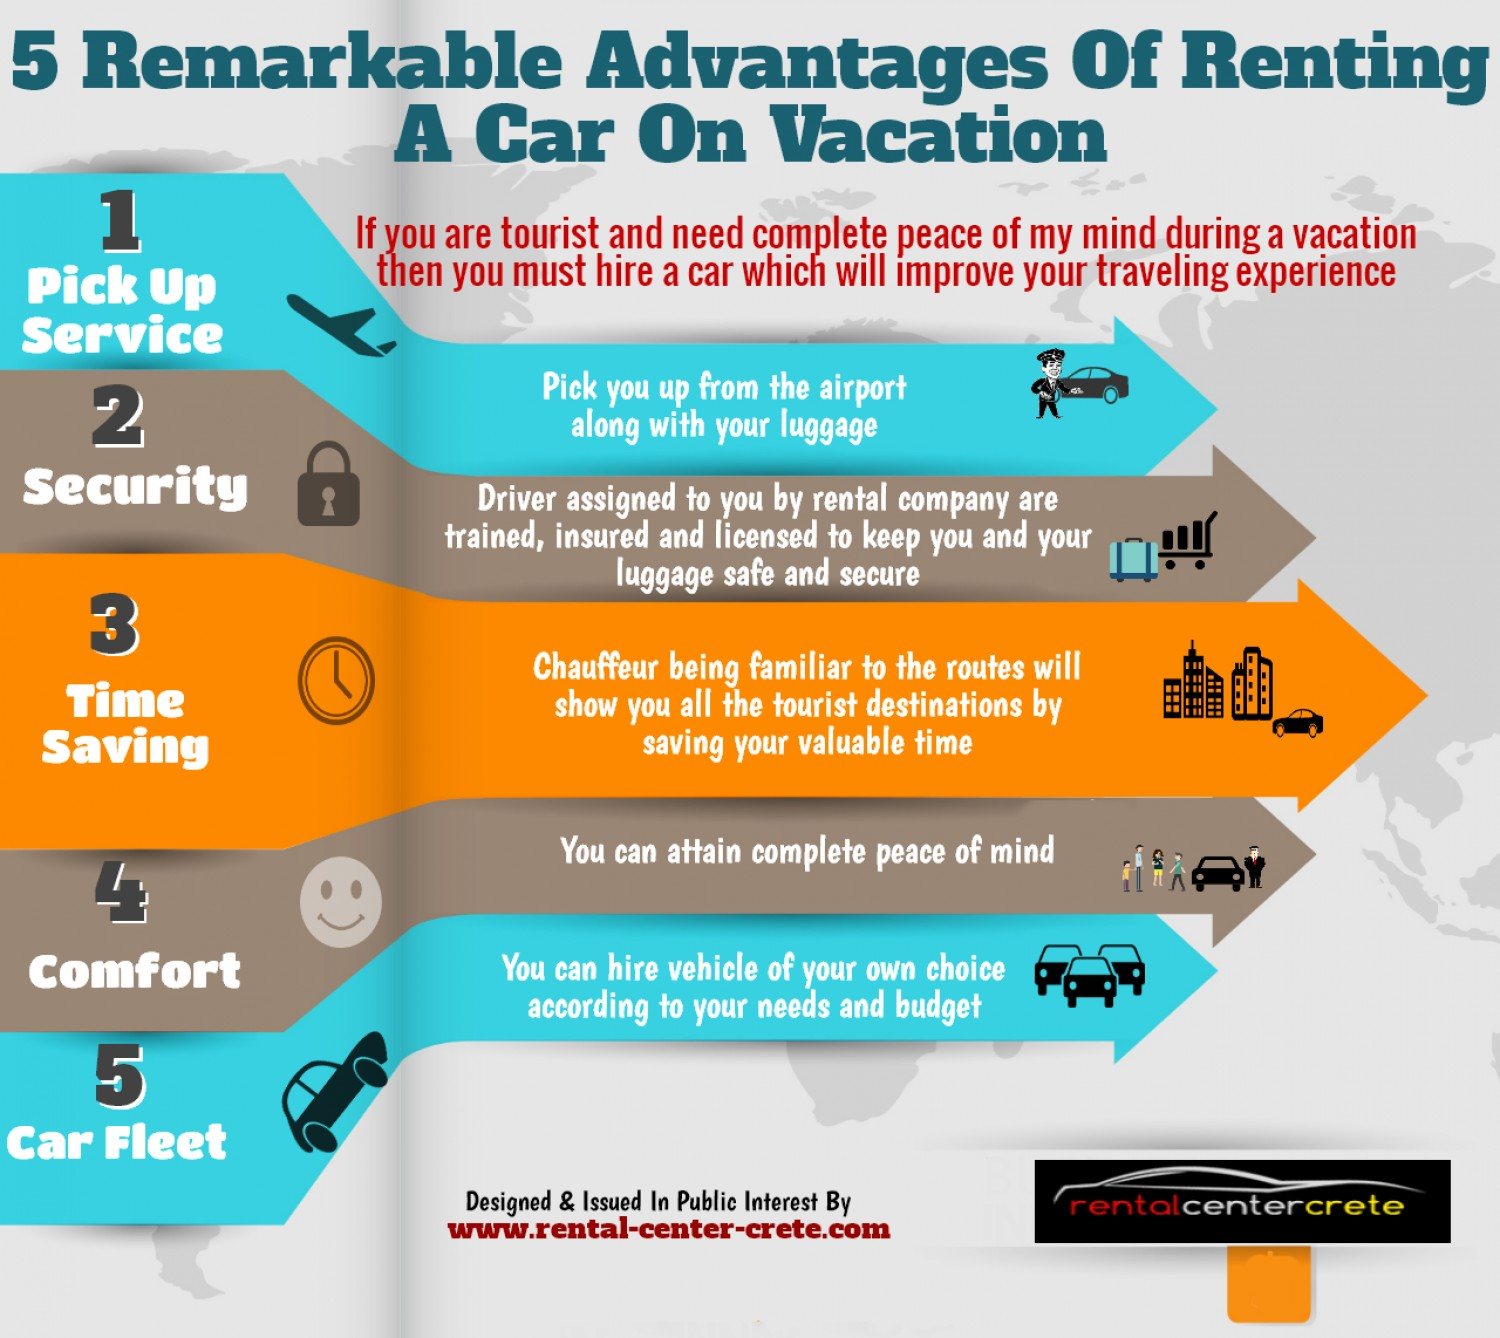 Advantages of renting a car on vacation